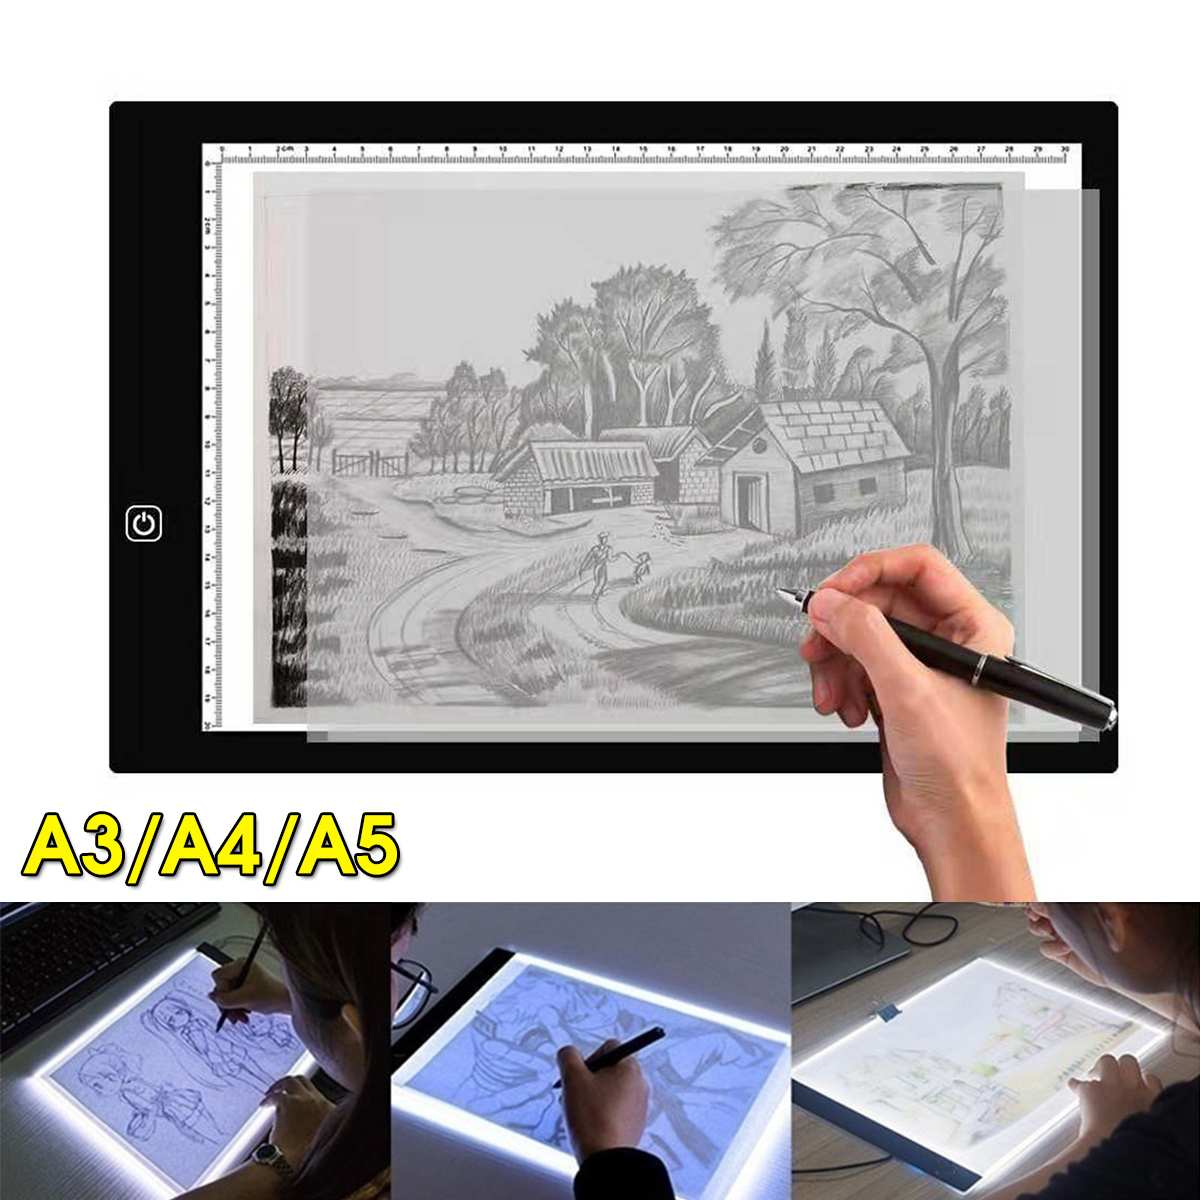 A3/A4/A5 Size Drawing Tablet Led Light Pad Tablet Diamond Painting Eye Protection Bright Copy Board Diamond Embroidery Art